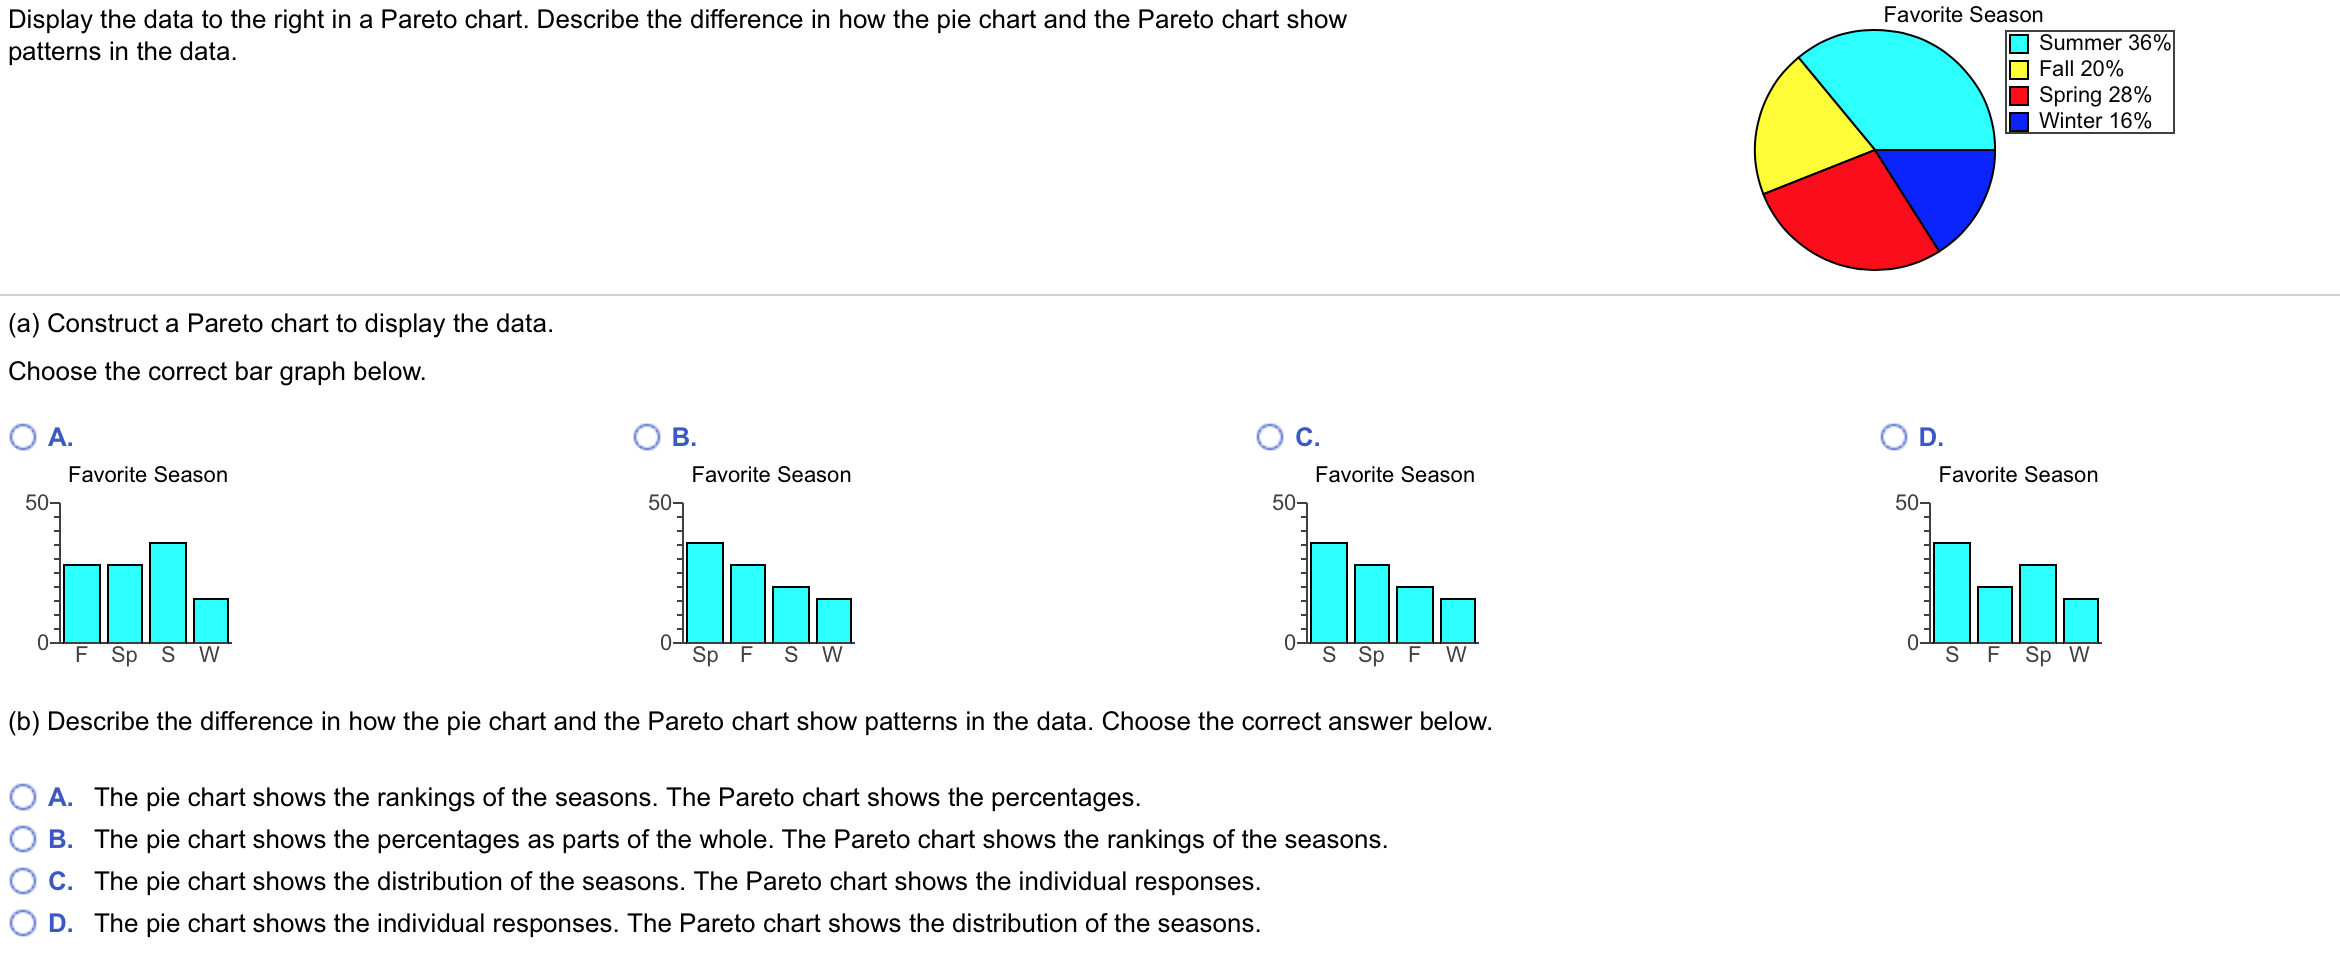 How to make pareto chart in excel images free any chart examples statistics and probability archive september 21 2016 chegg display the data to the right in a nvjuhfo Choice Image